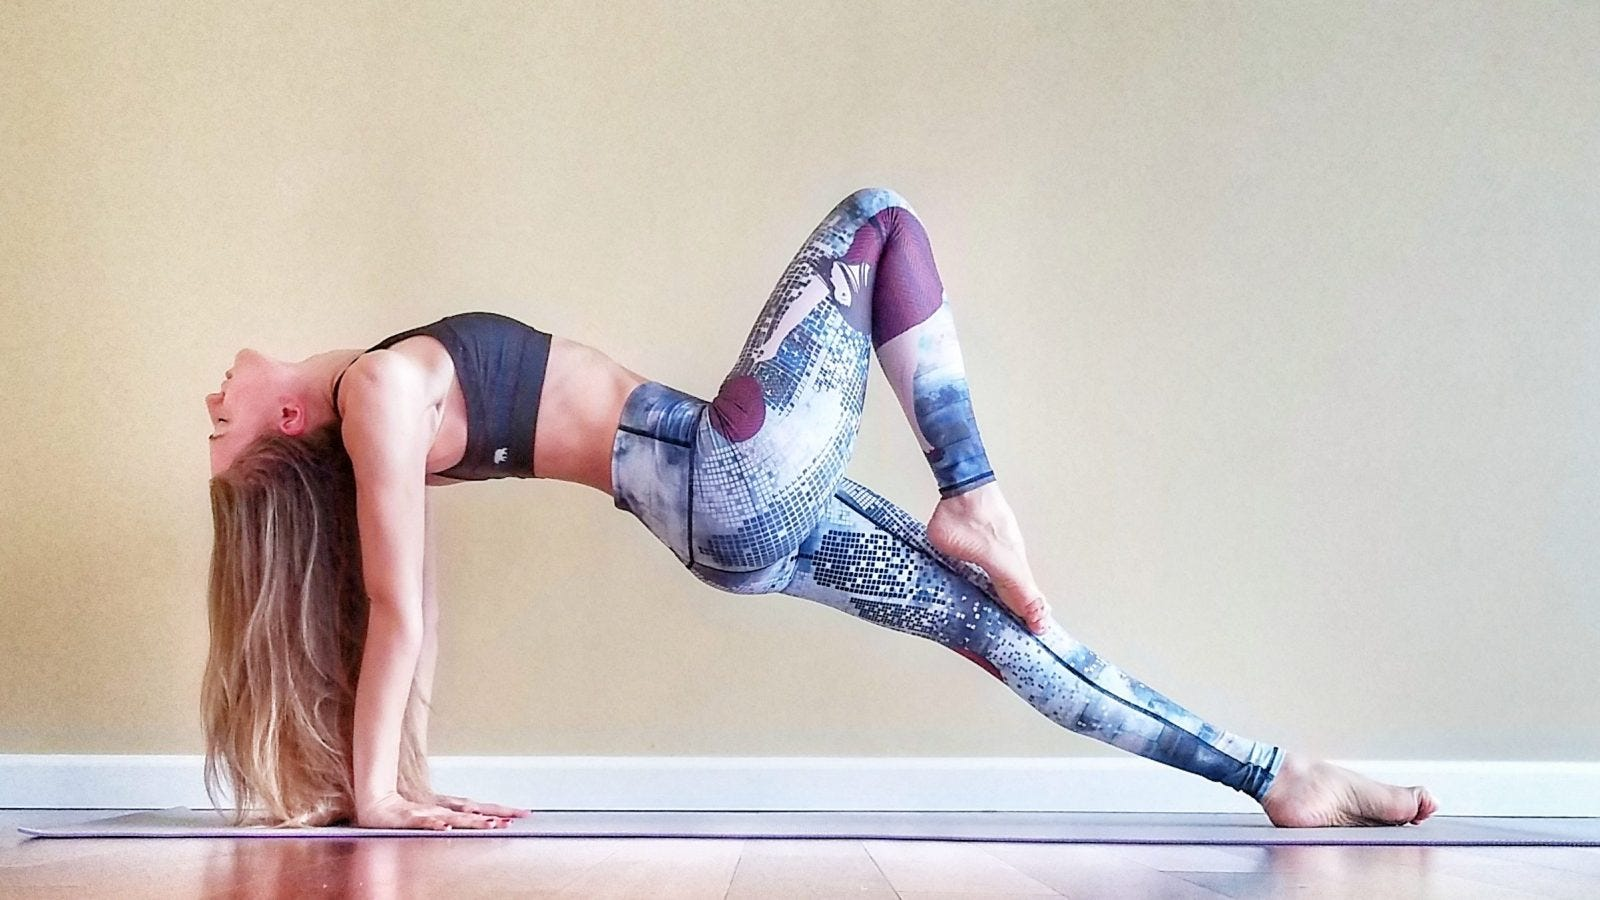 A woman stretching her upper body in a yoga pose.